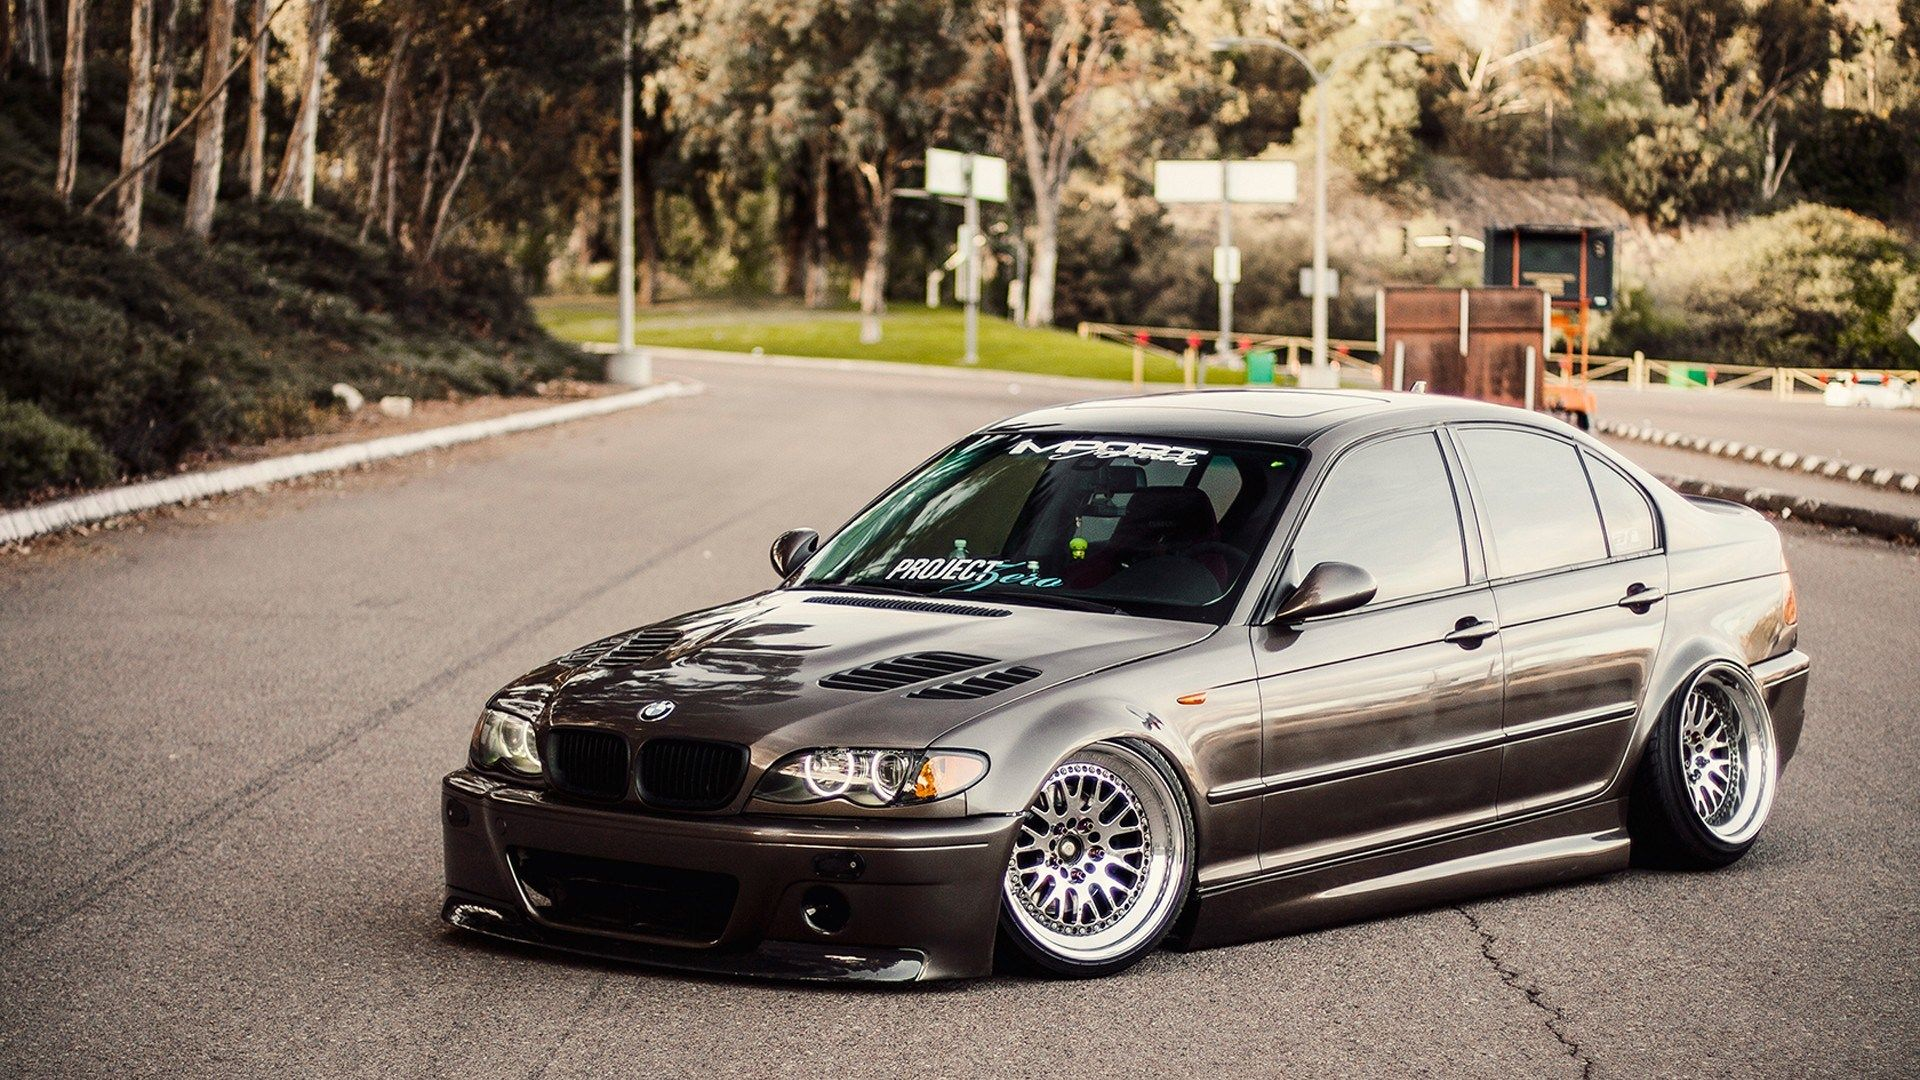 bmw e46 tuning pesquisa google e46 pinterest bmw e46 bmw and bmw cars. Black Bedroom Furniture Sets. Home Design Ideas